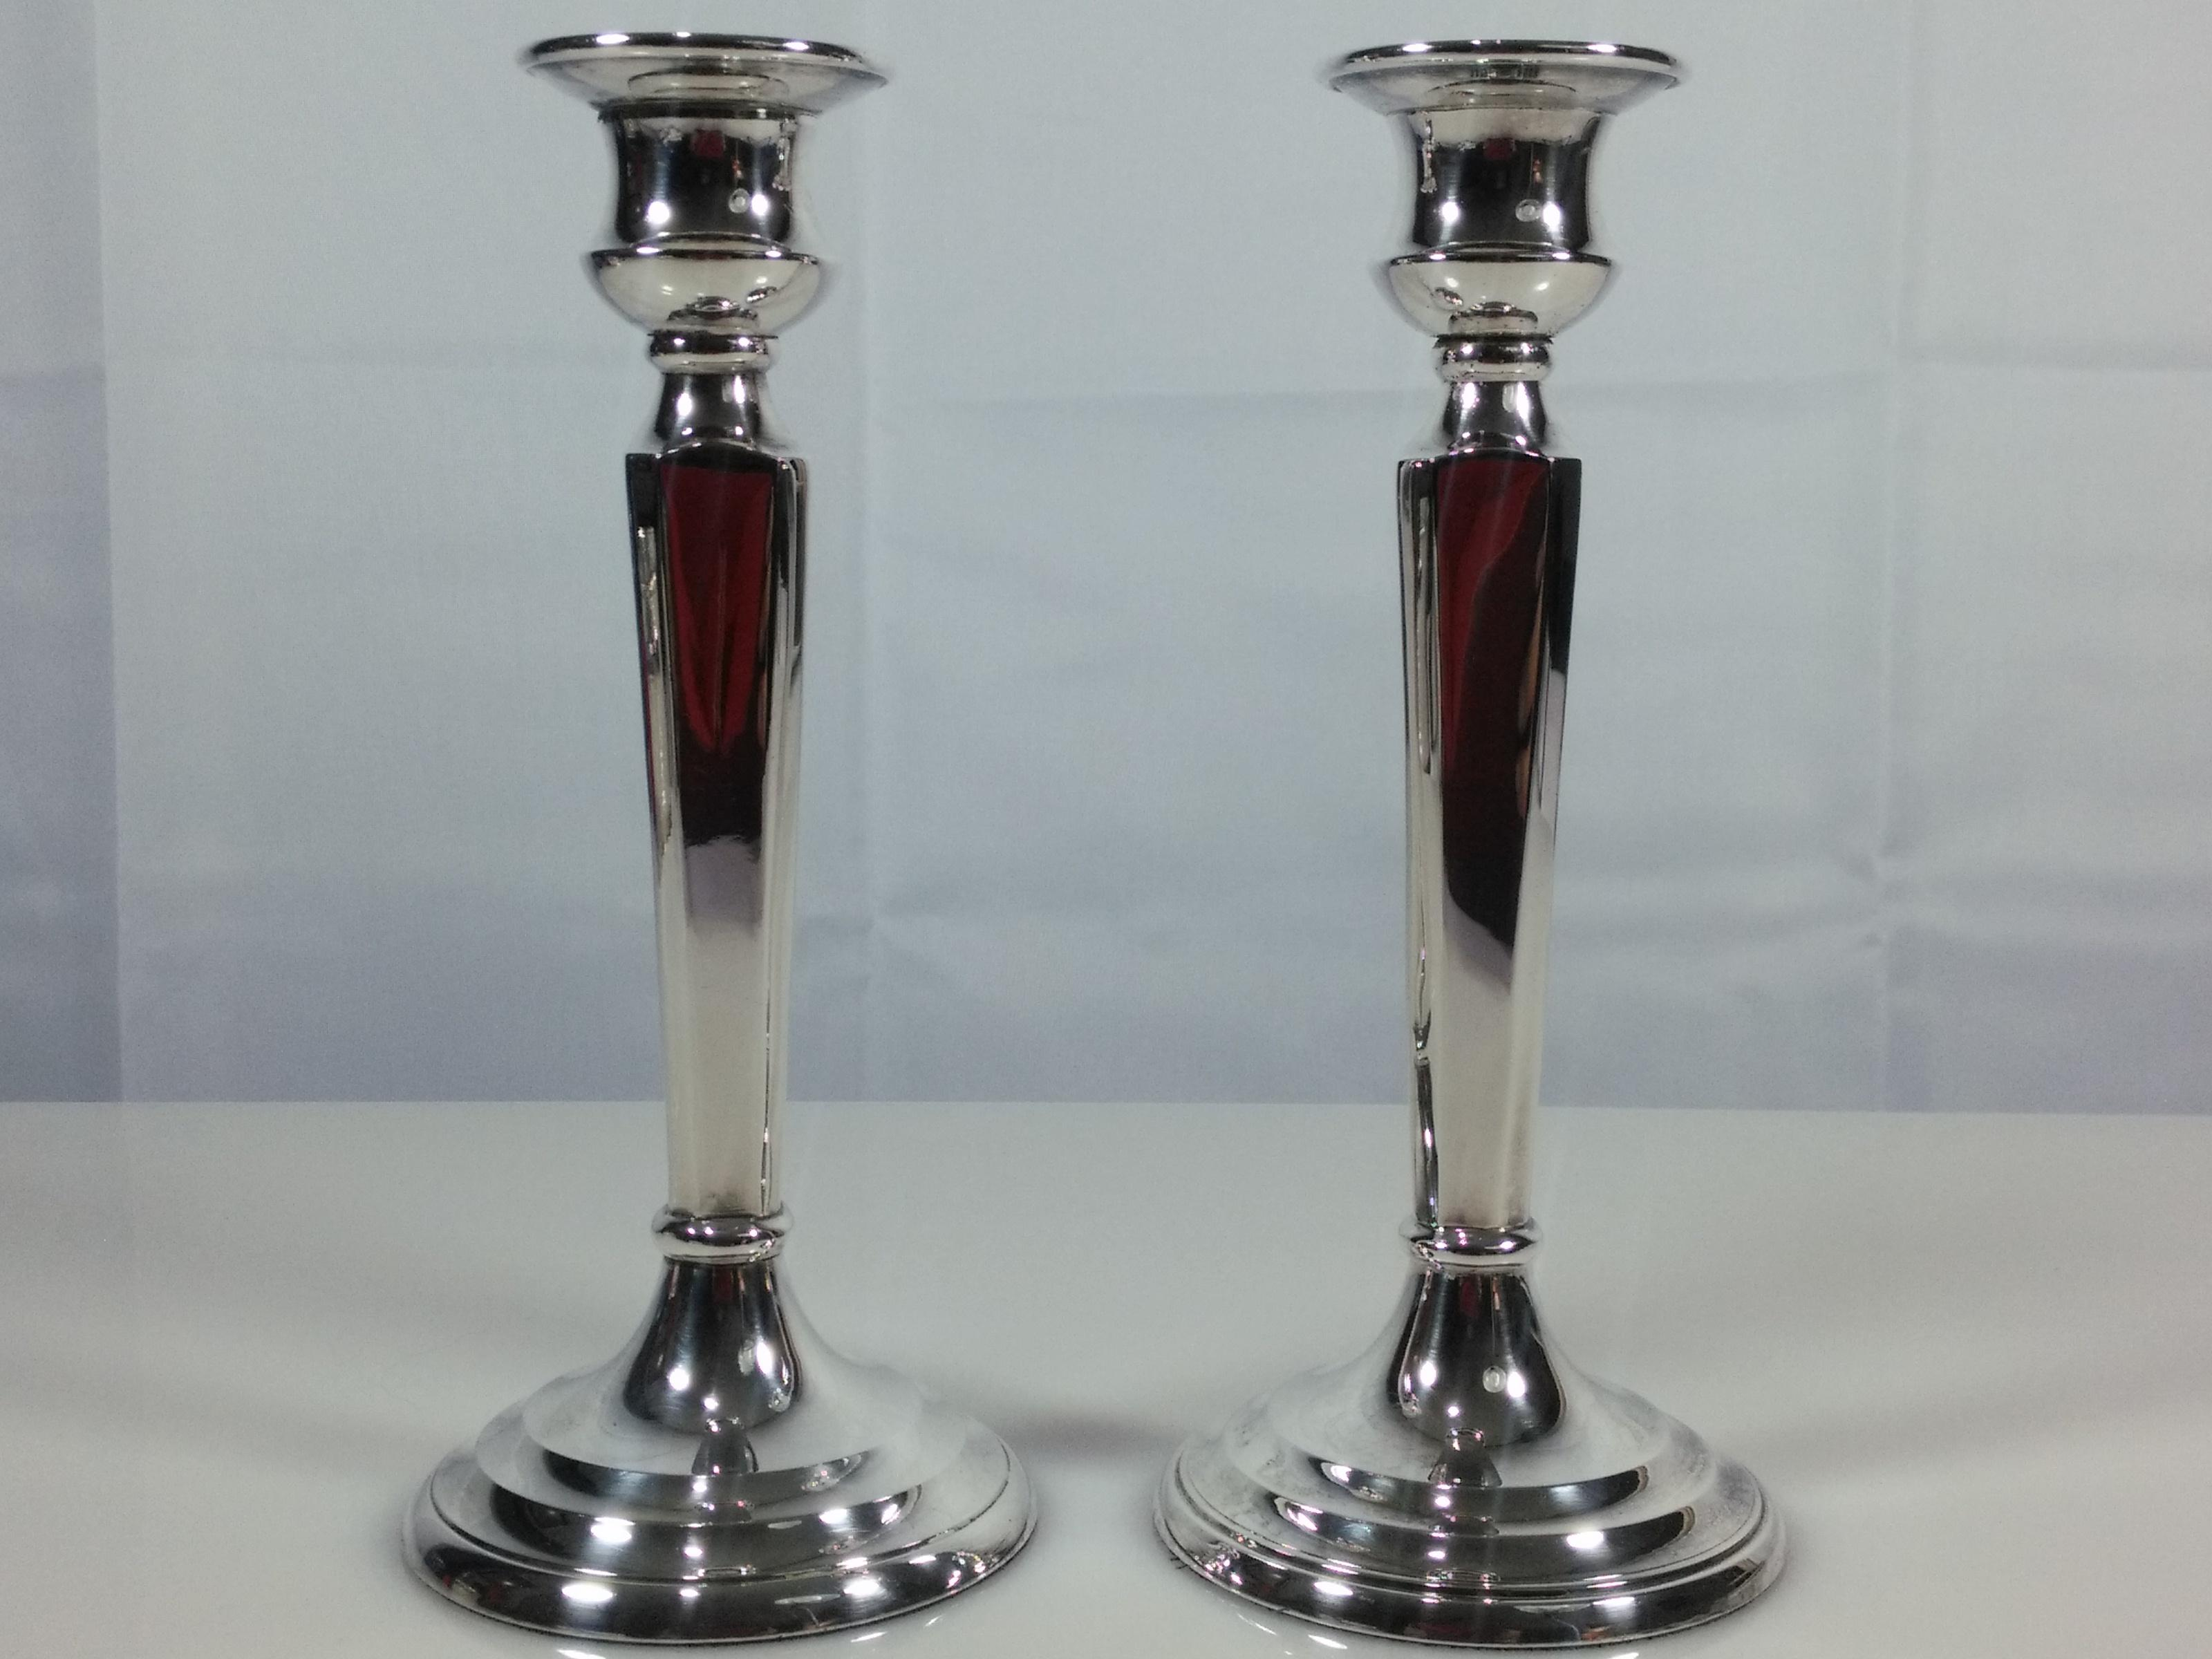 Restoration Hardware Candlesticks A Pair Chairish